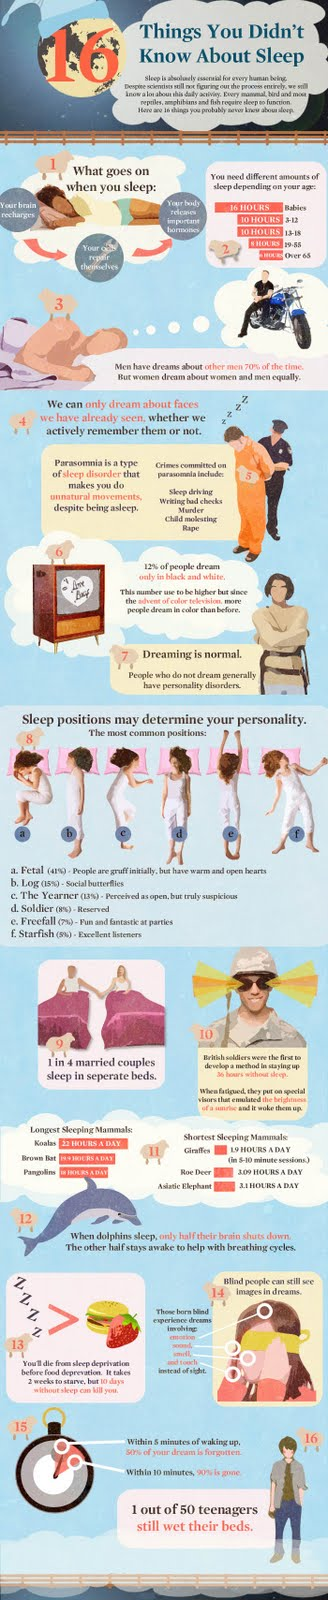 Curious Facts about Sleep